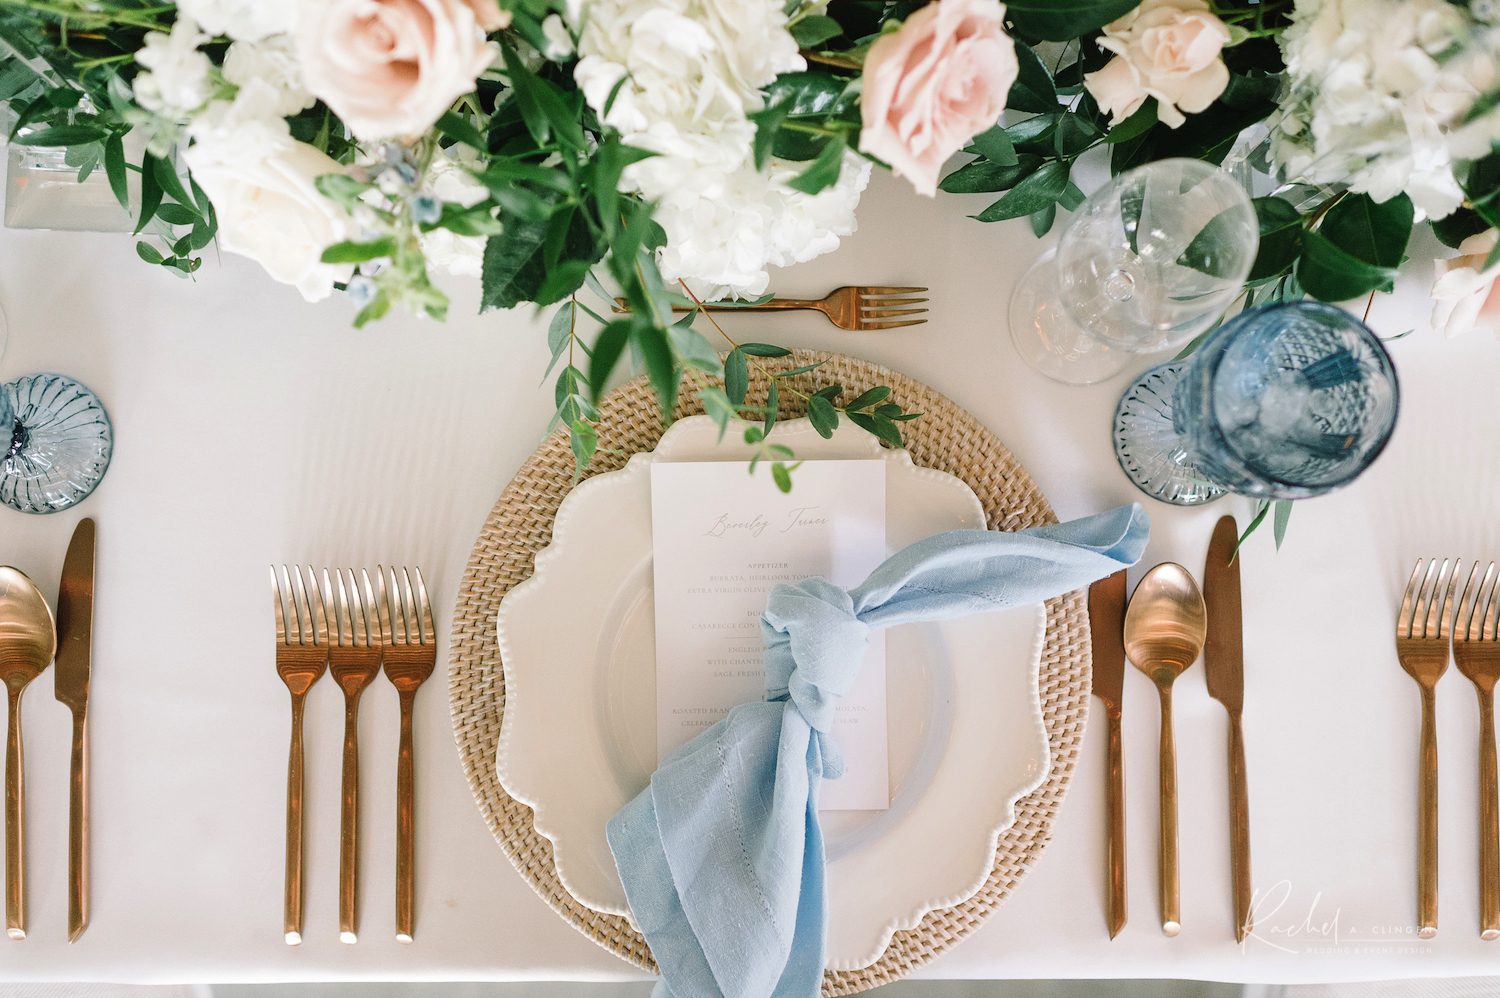 placesetting wedding dusty blue